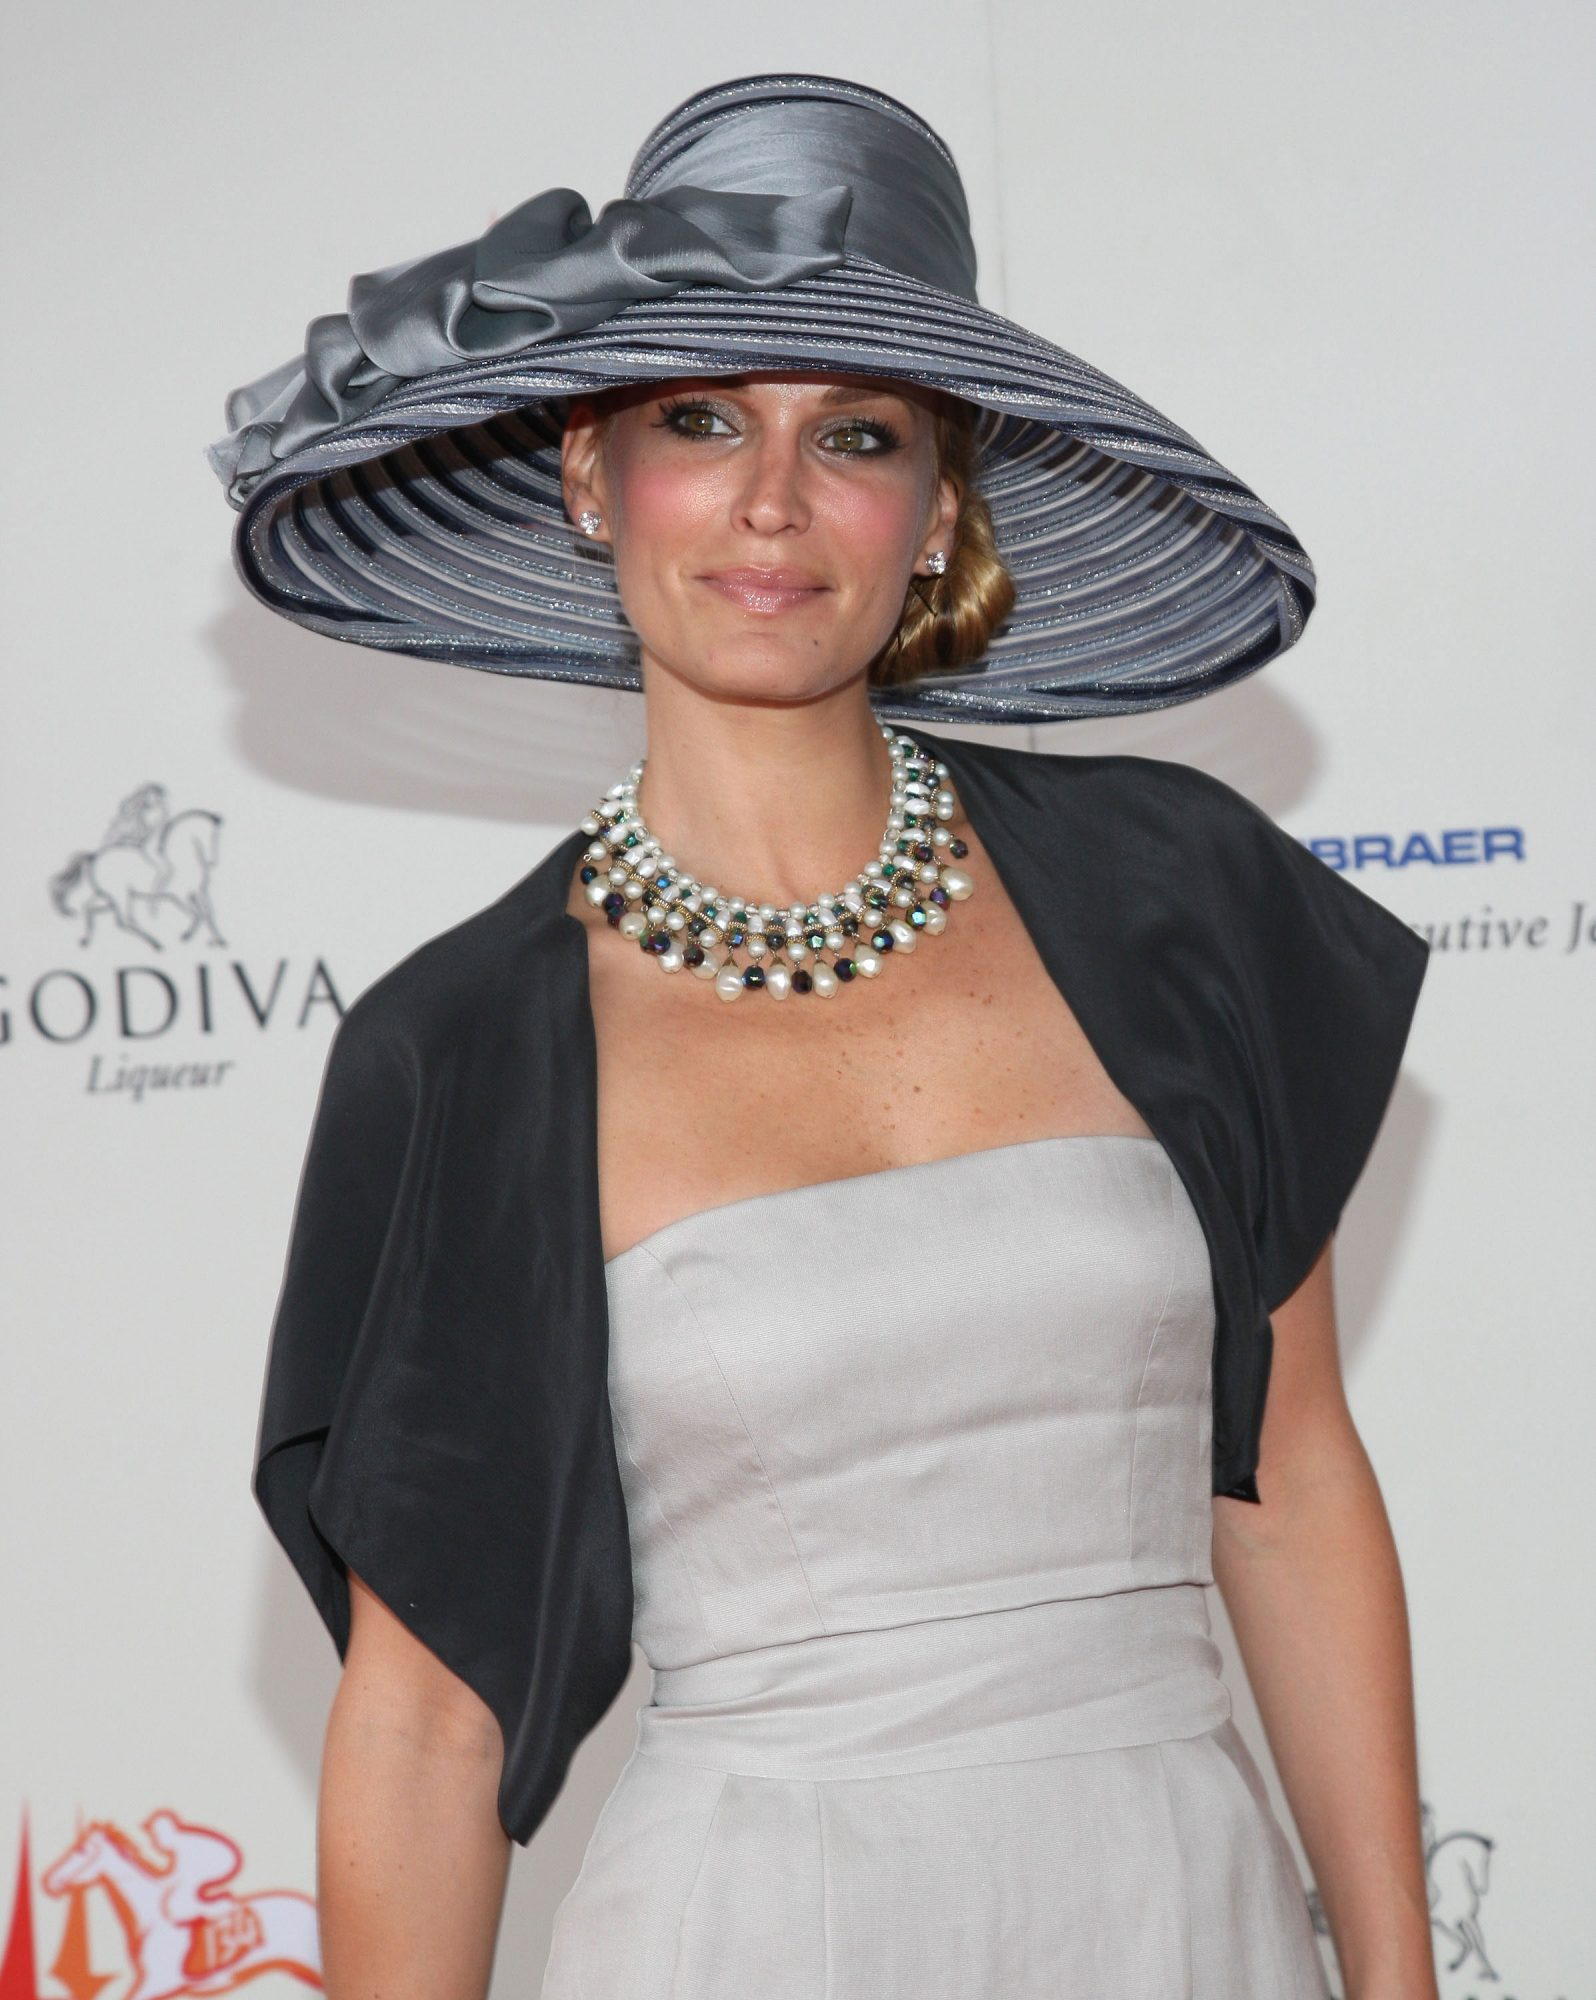 Molly Sims at the Kentucky Derby